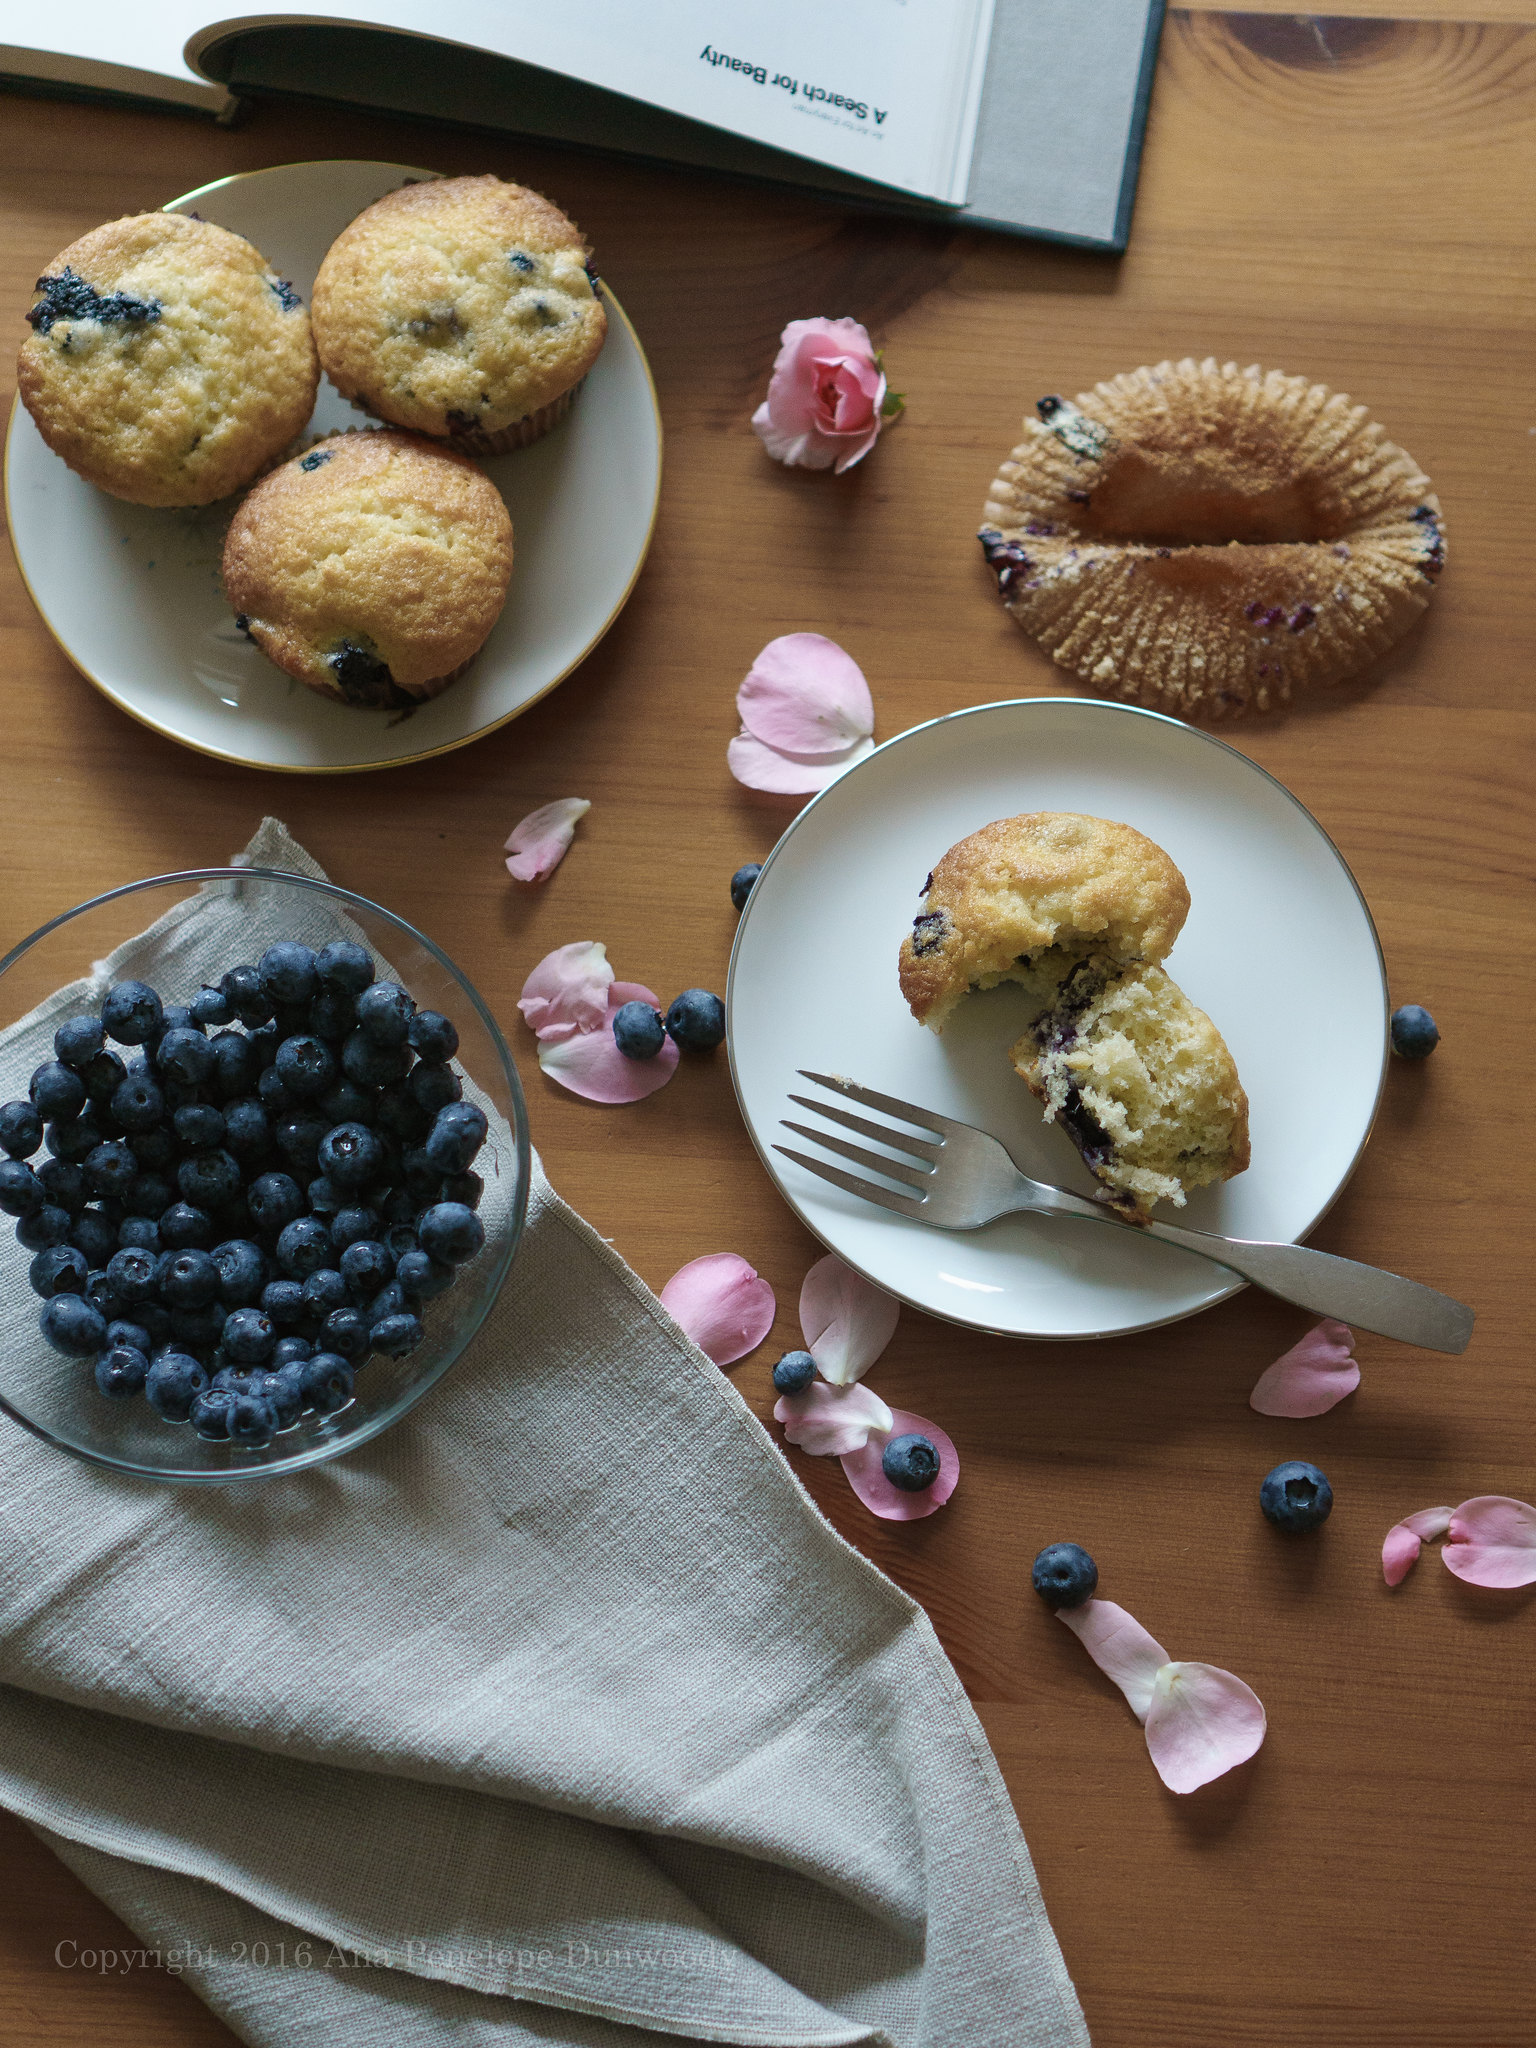 A search for beauty in blueberry muffins and rose petals